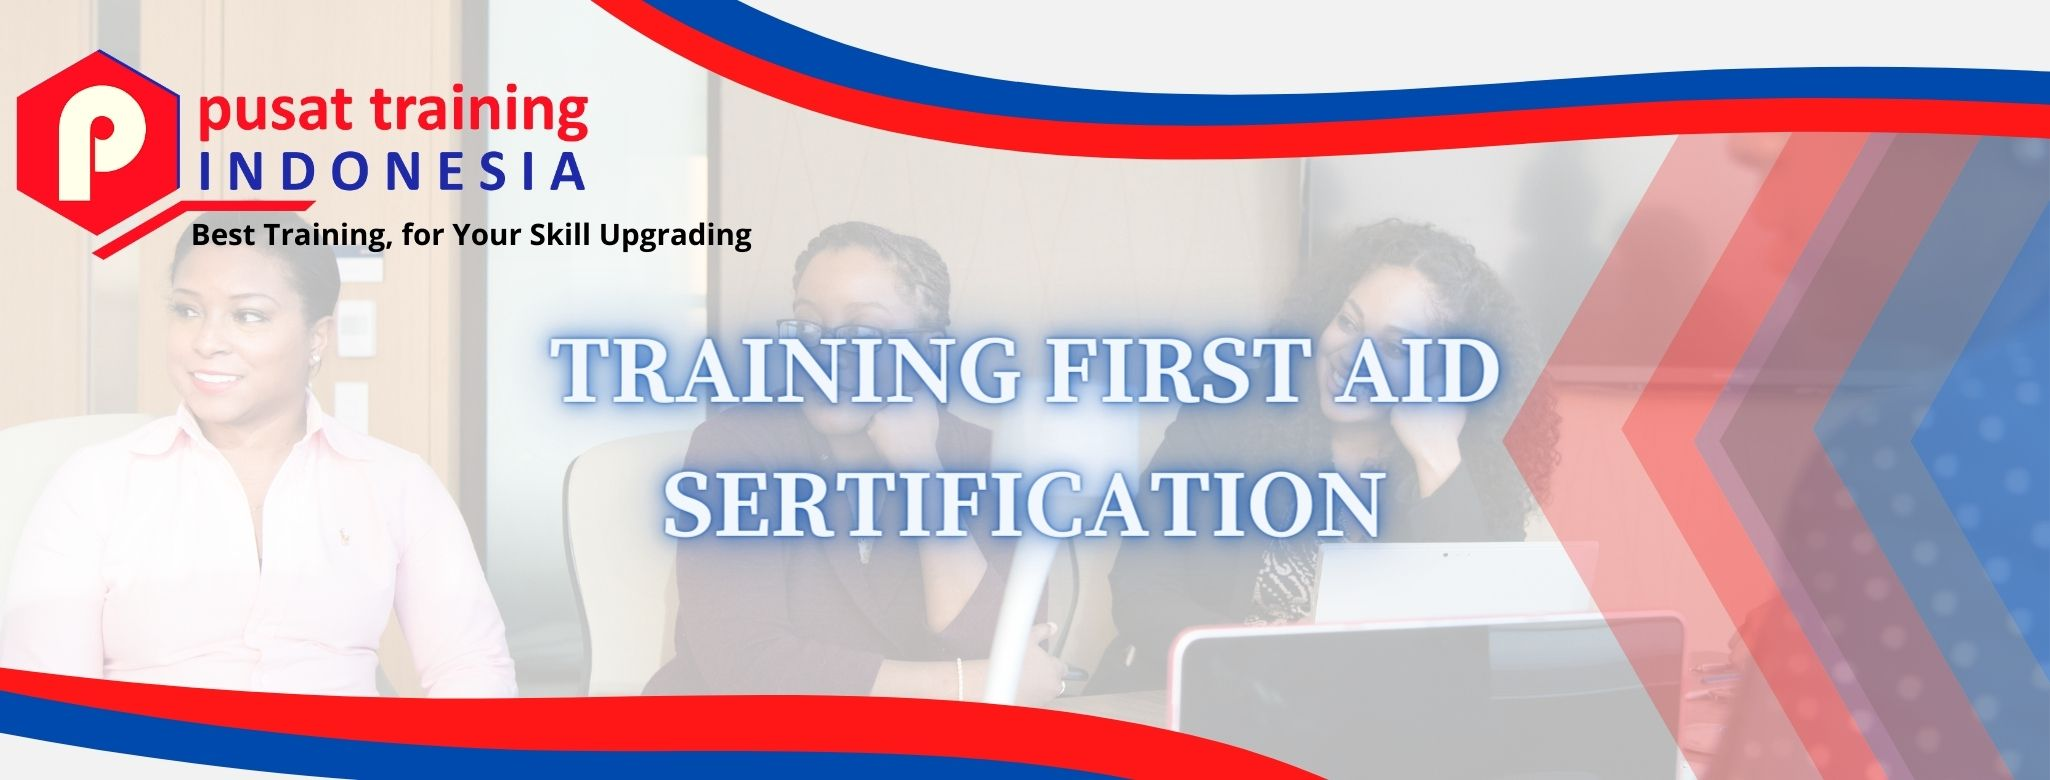 TRAINING FIRST AID SERTIFICATION